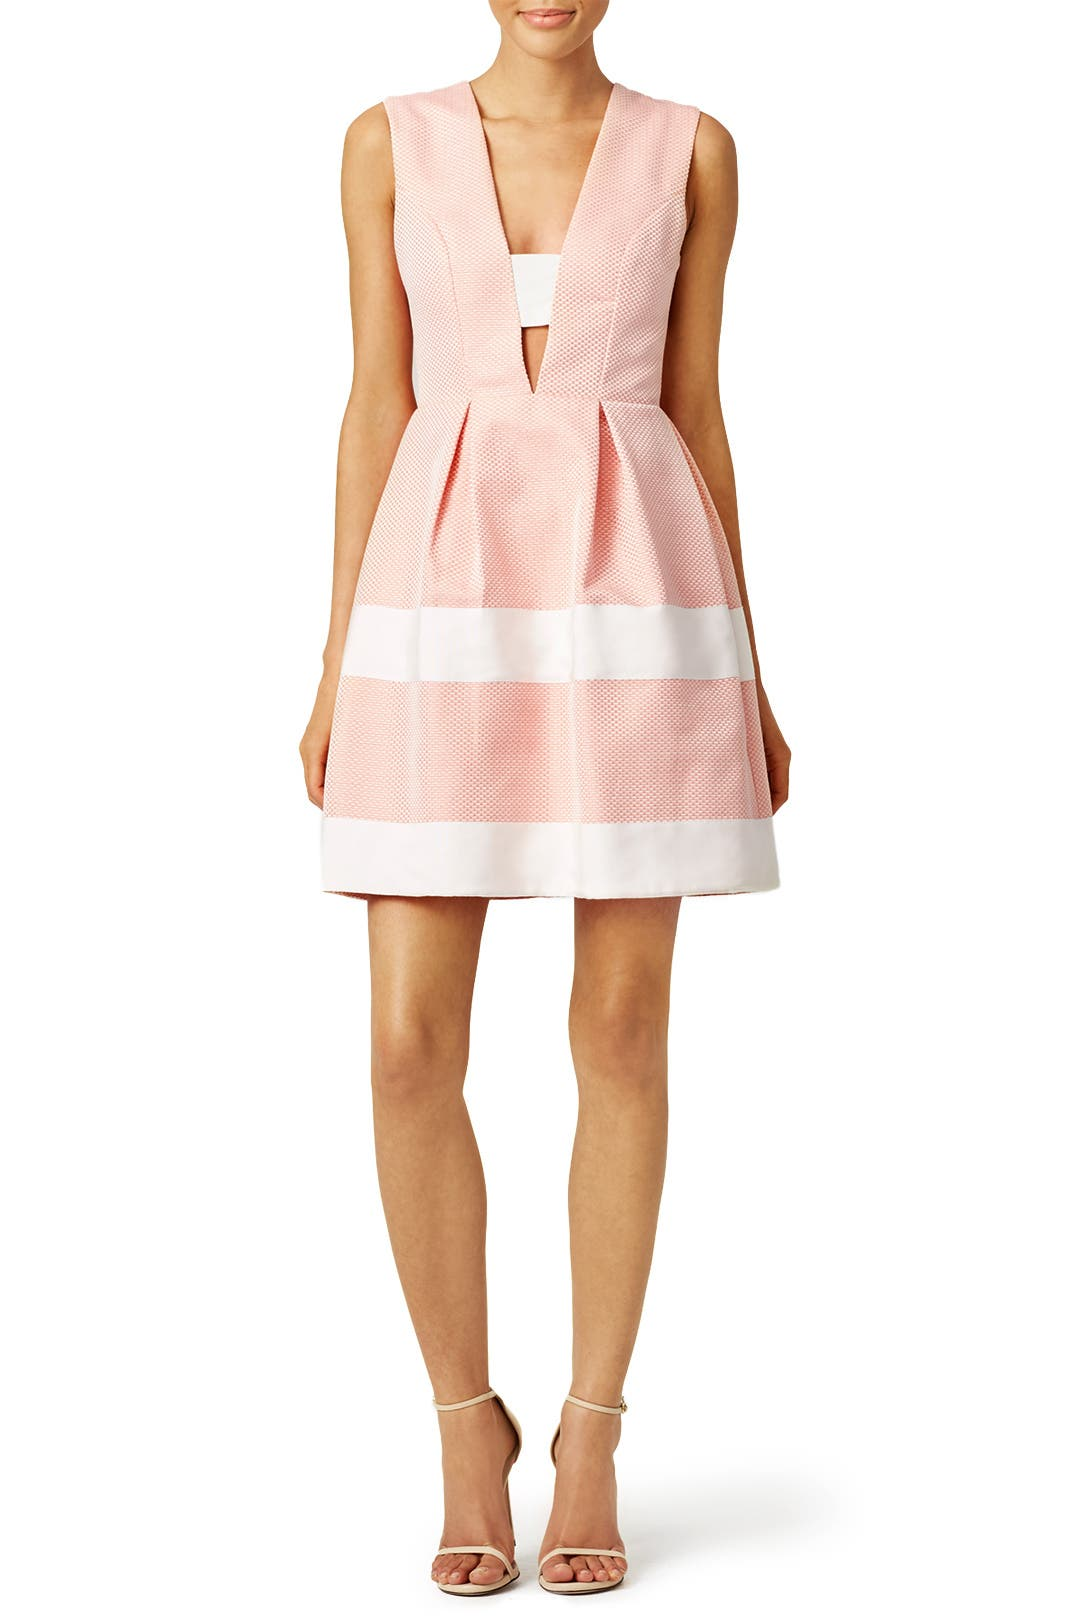 Pink Candy Stripe Dress By Nha Khanh For 50 85 Rent